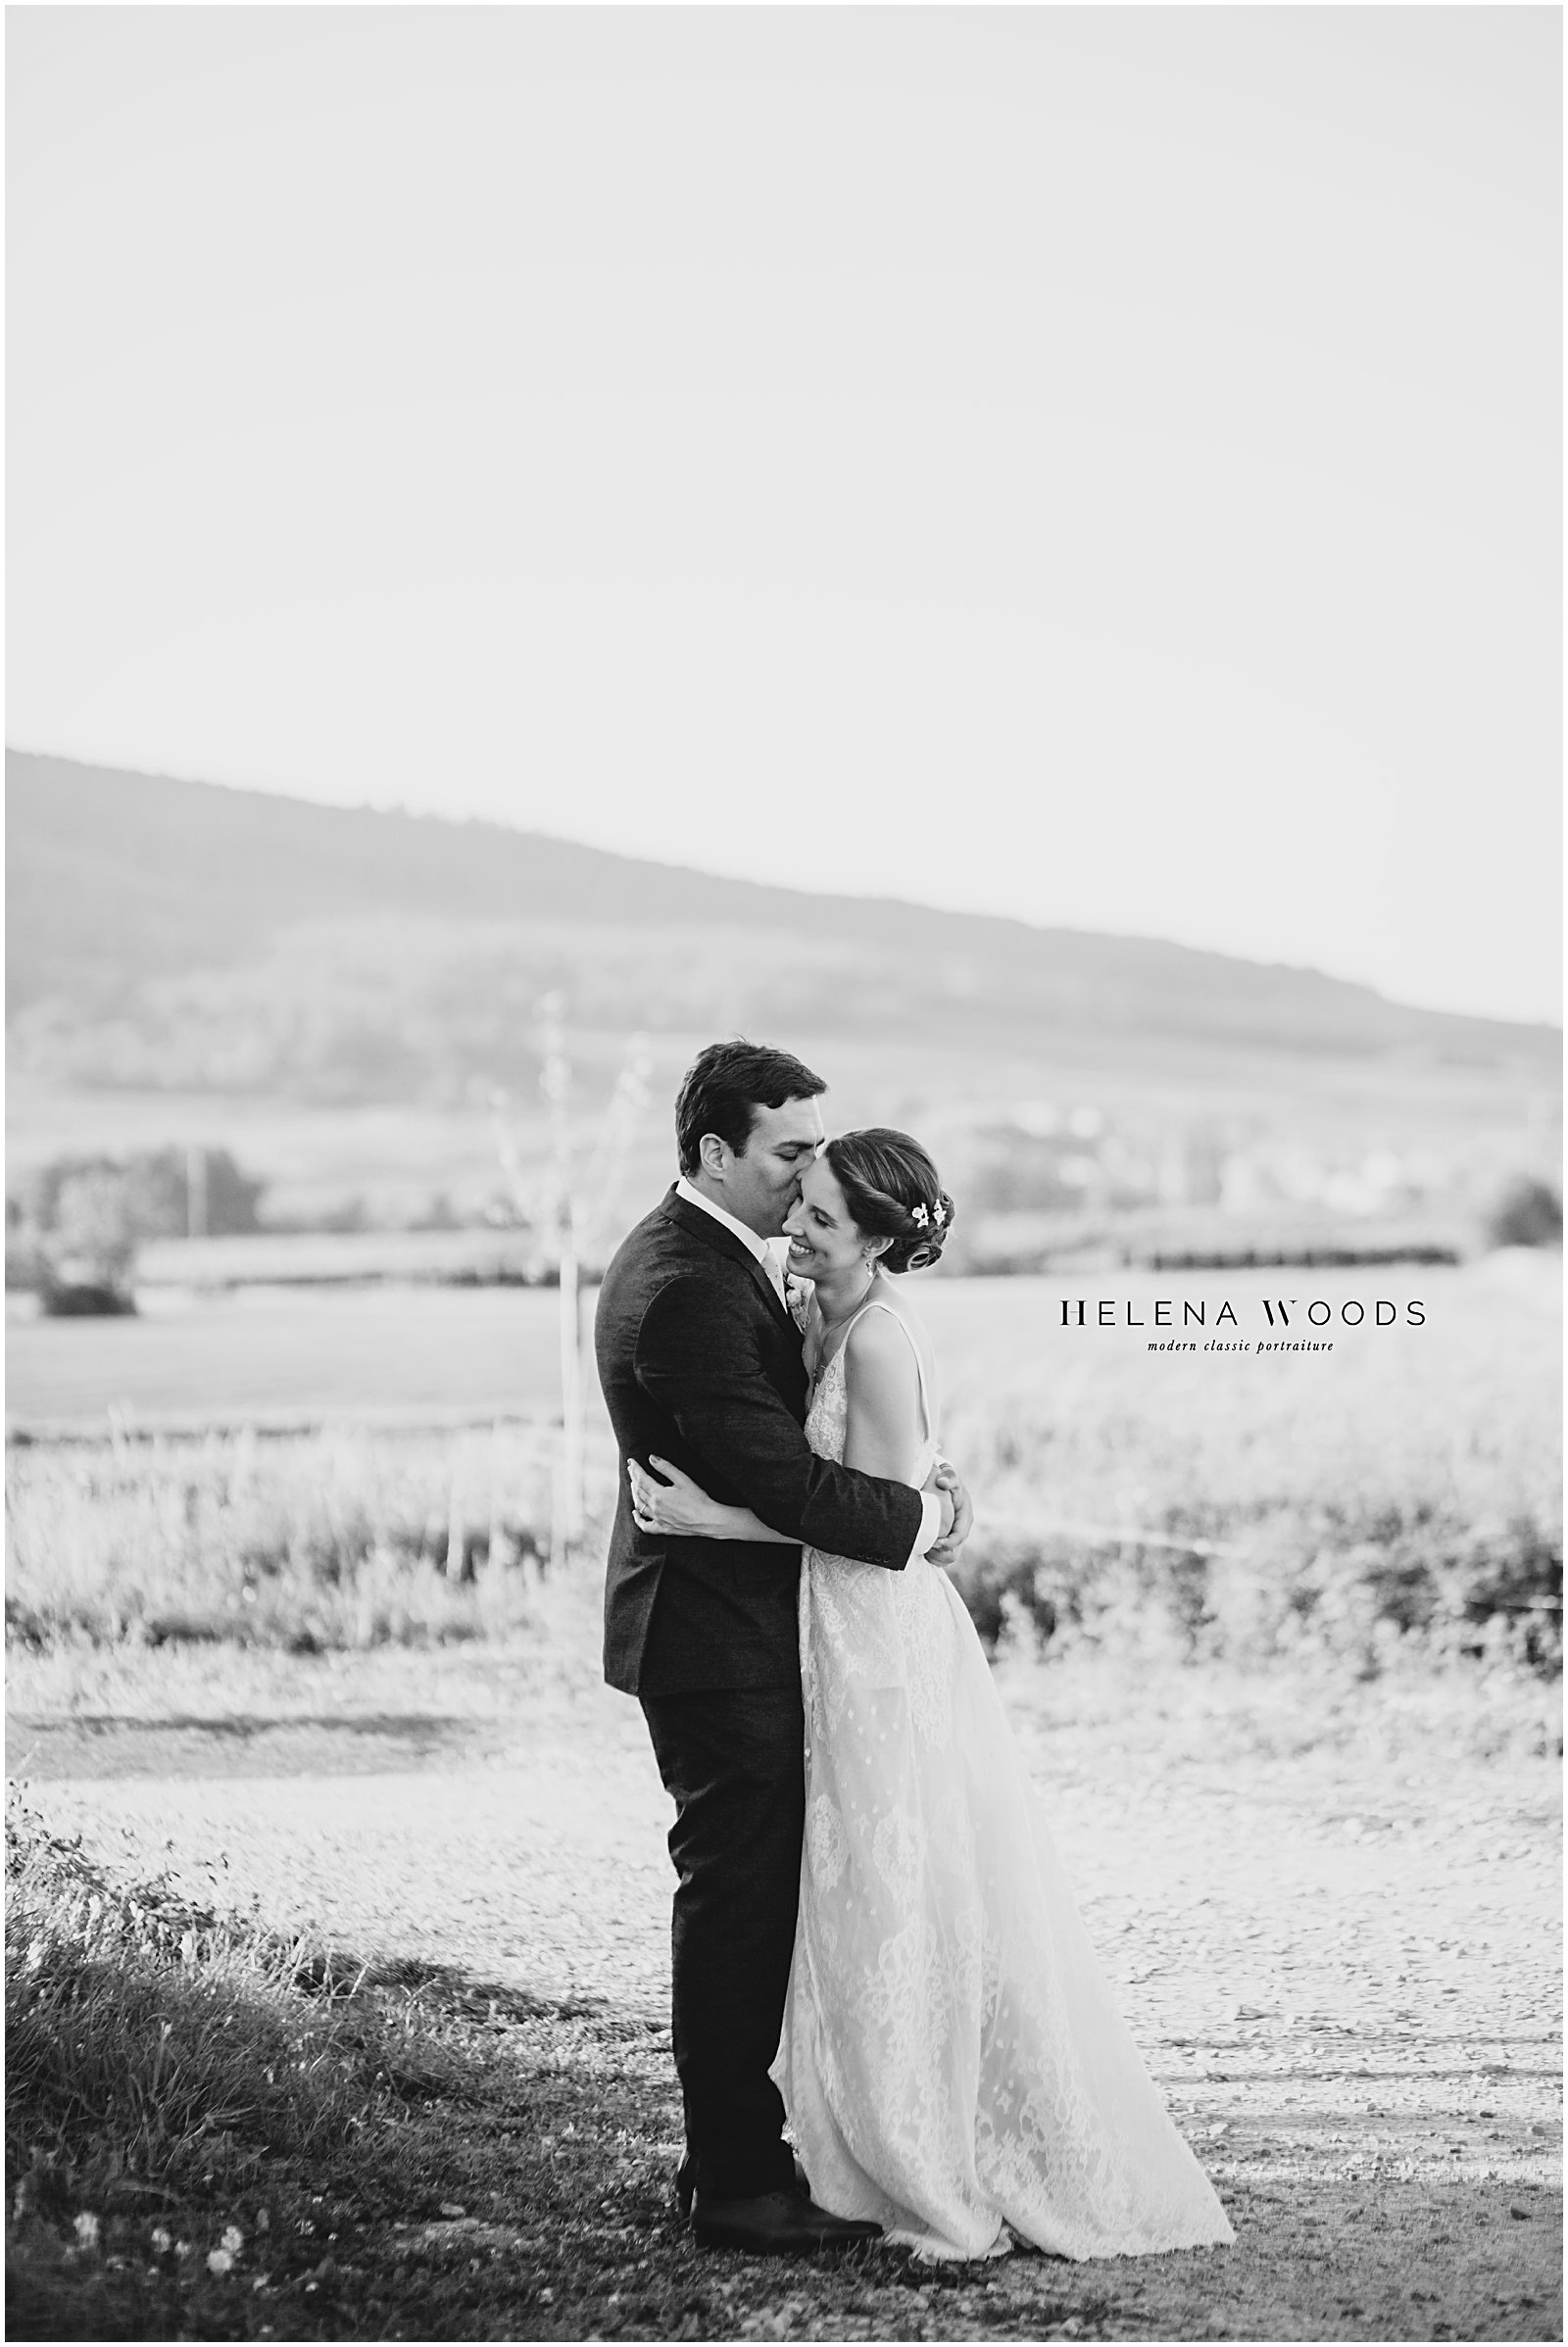 bridal portraits at Achilles Domaine vineyards photographed by wedding photographer Helena Woods